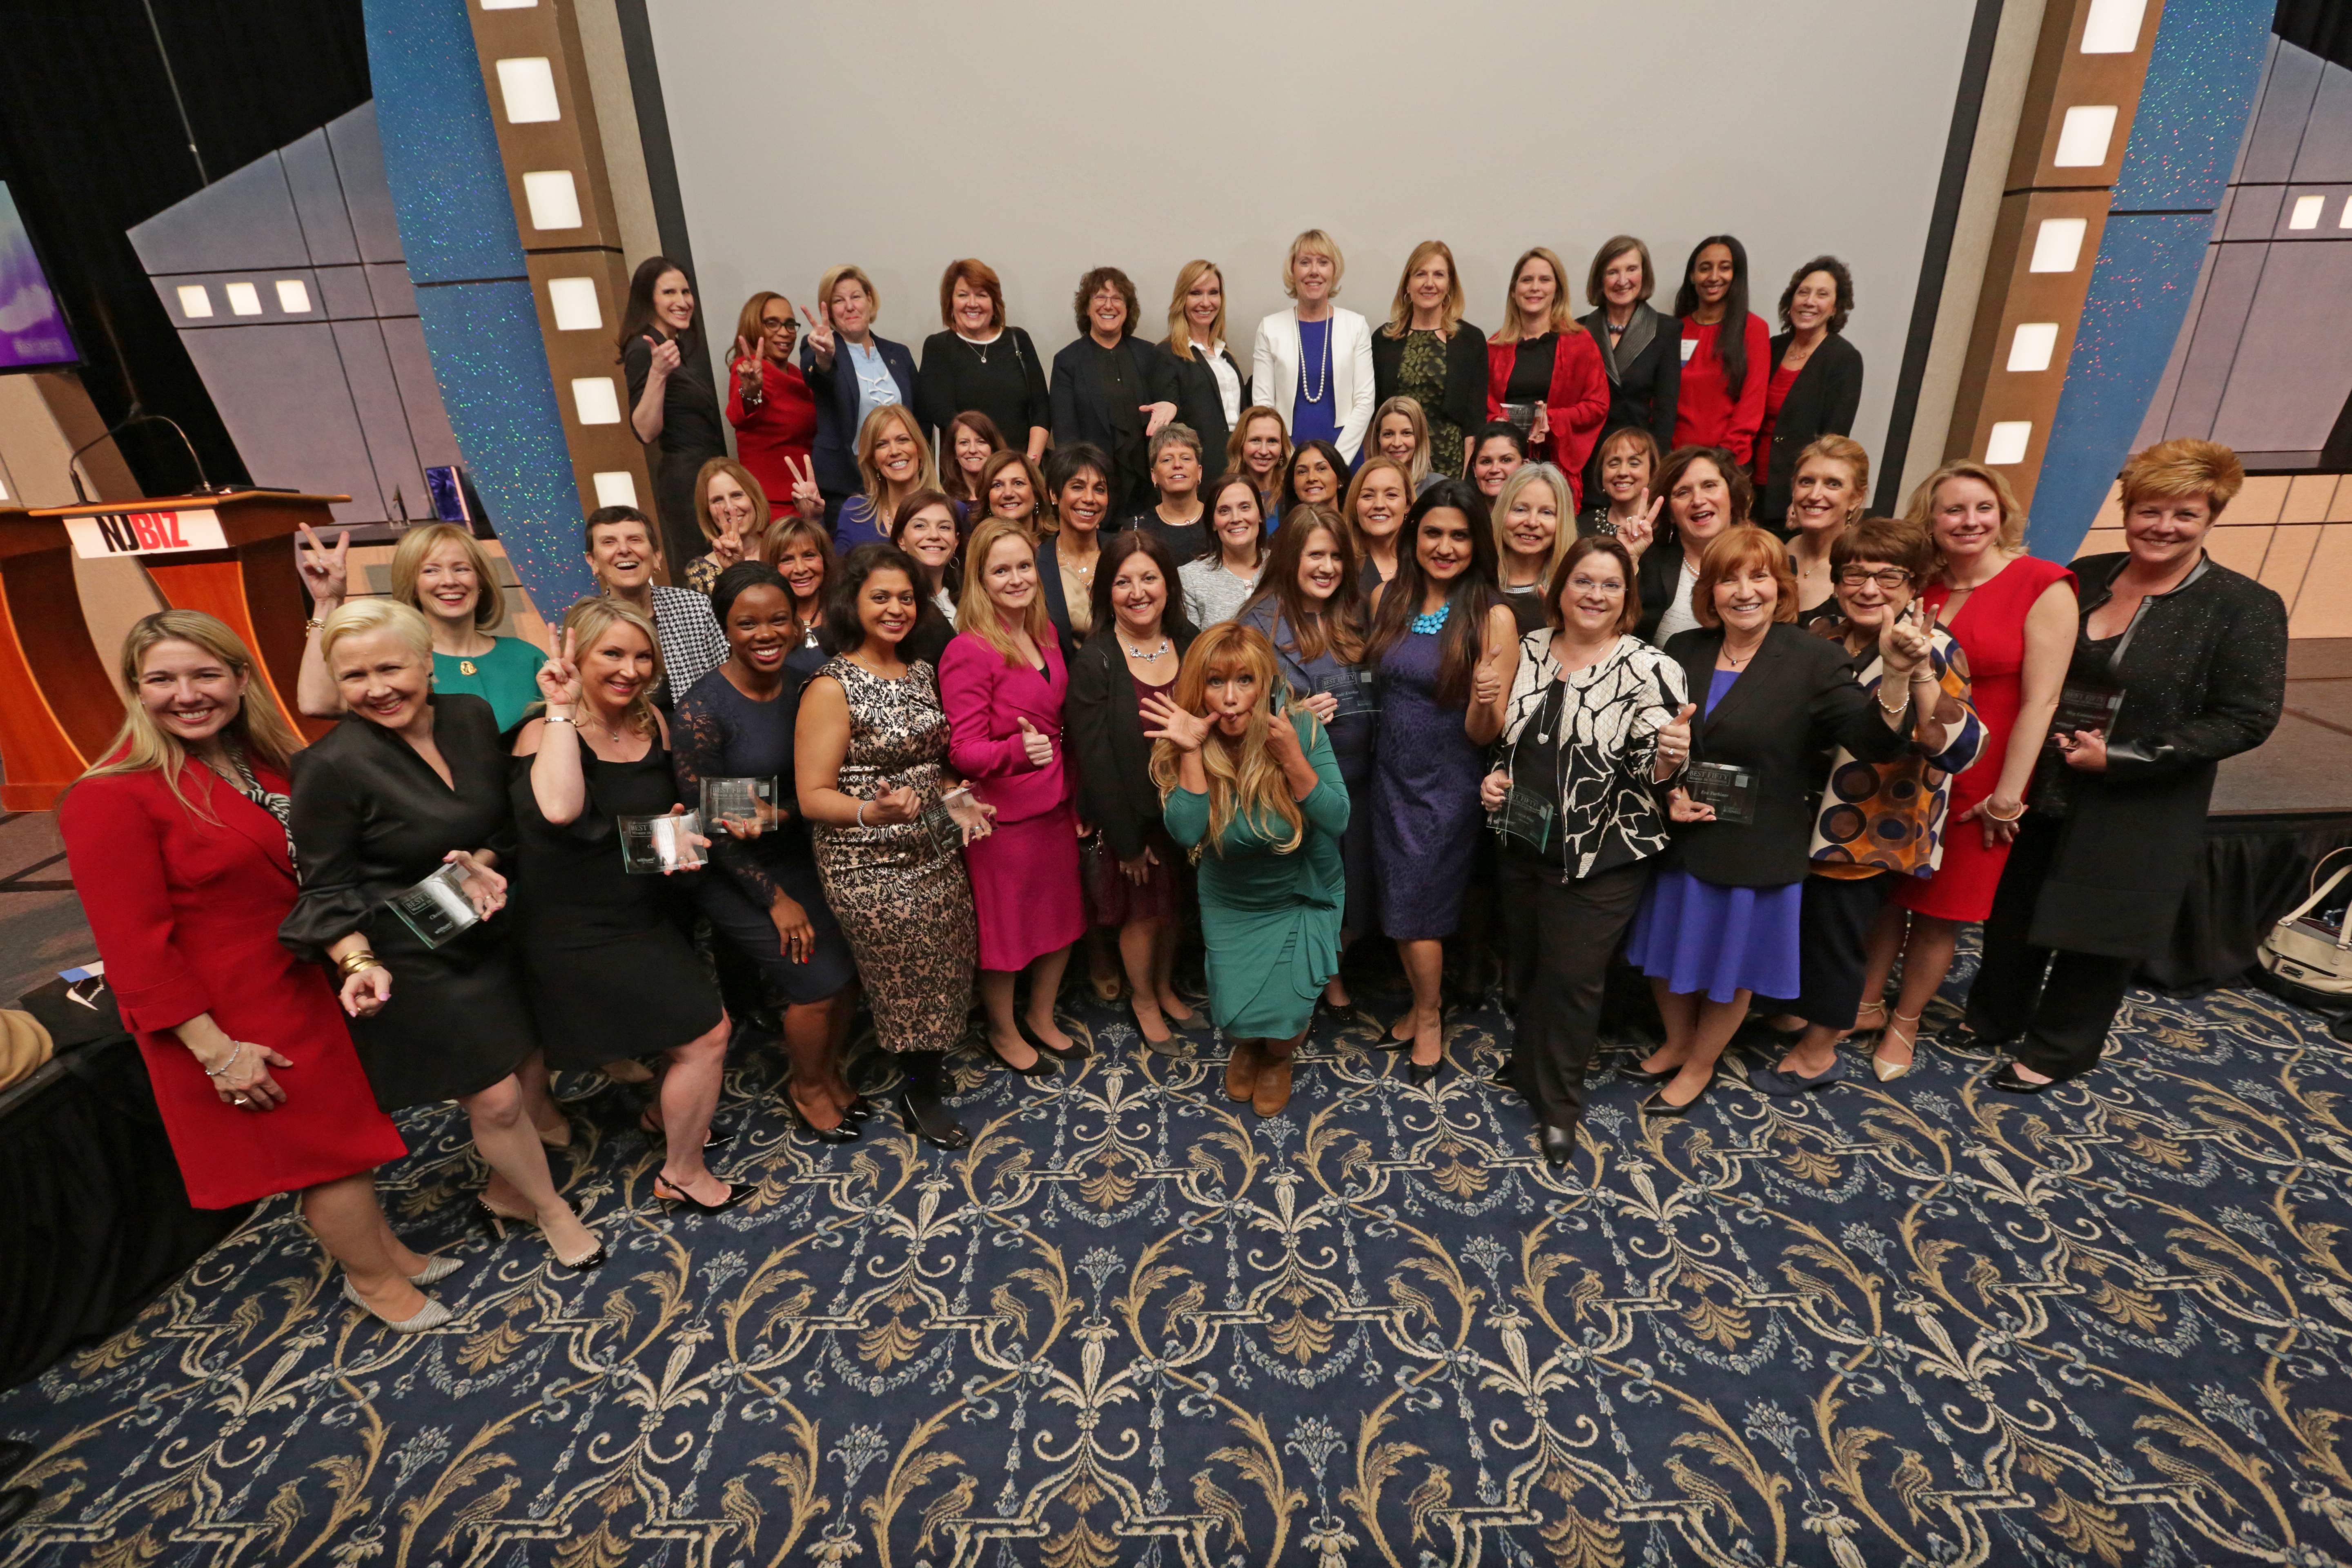 A silly shot of the Best 50 Women in Business Class of 2017.